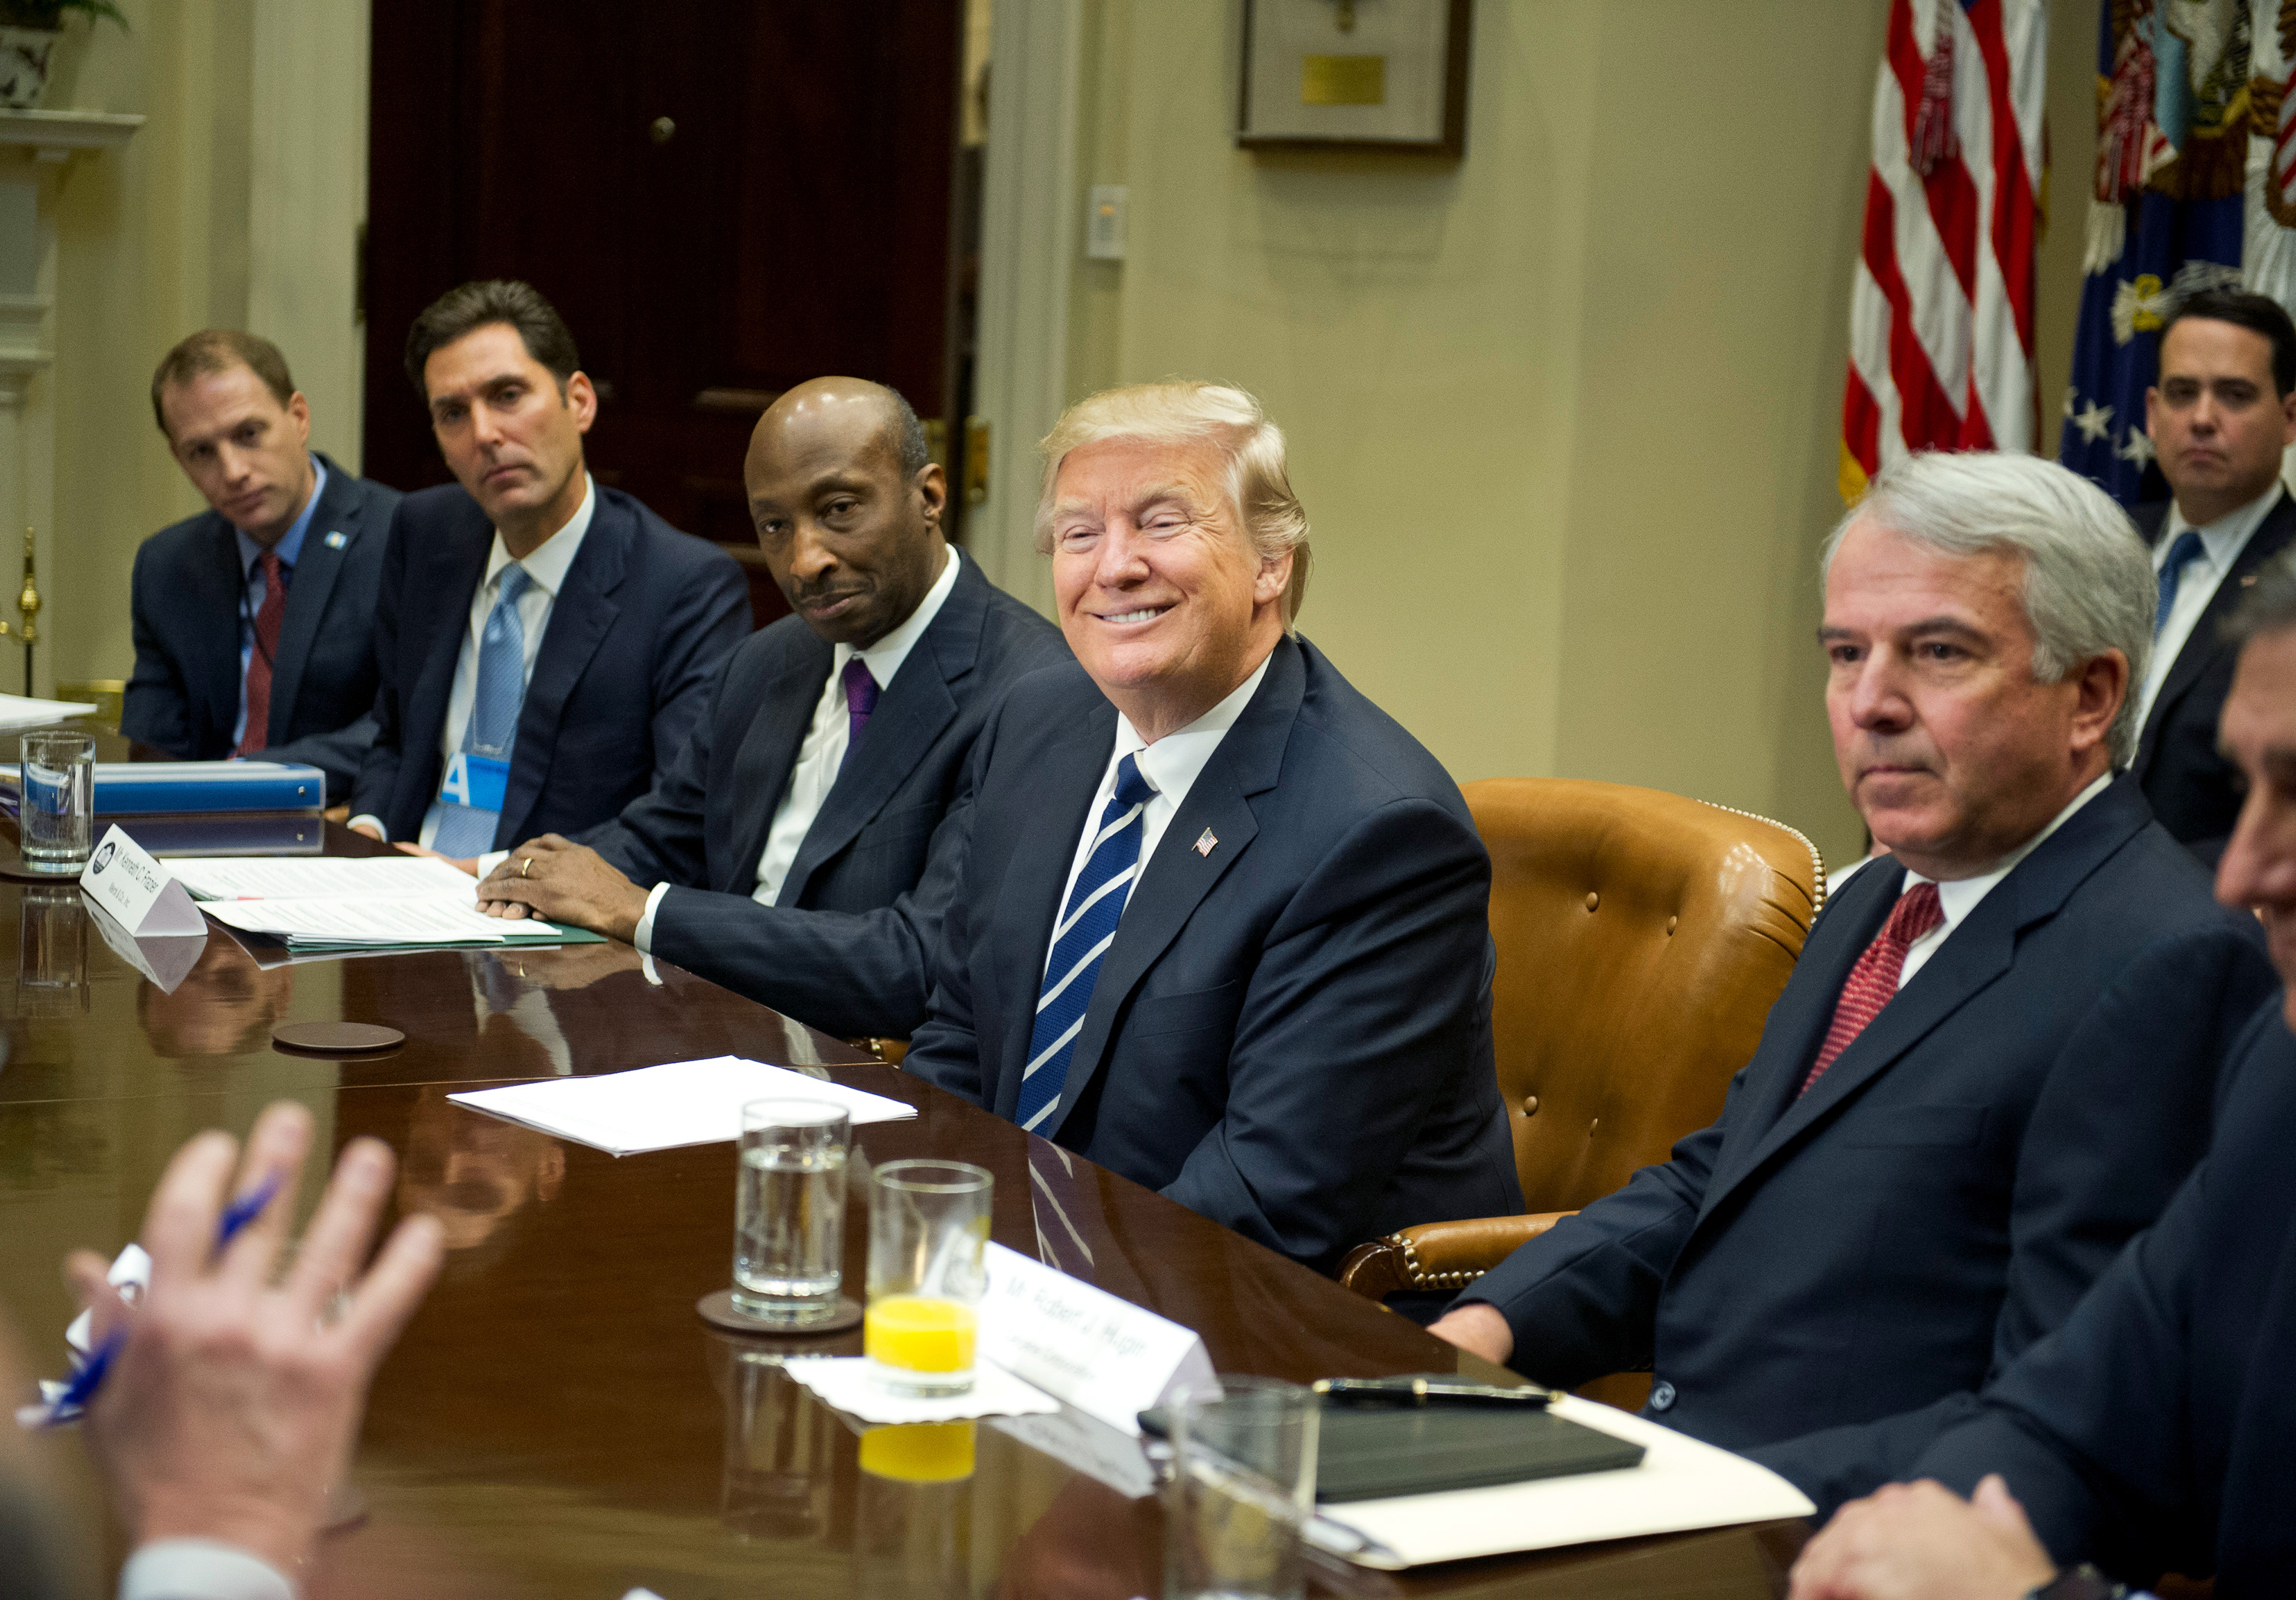 "WASHINGTON, DC - JANUARY 31: (AFP OUT) U.S. President Donald Trump meets with representatives from PhRMA, the Pharmaceutical Research and Manufacturers of America, in the Roosevelt Room of the White House on January 31, 2017 in Washington, DC. According to its website PhRMA ""represents the countrys leading biopharmaceutical researchers and biotechnology companies."" From left to right: Josh Pitcock, Chief of Staff to the Vice President; Stephen Ubl, President and CEO, PhARMA; Kenneth C. Frazier, Chairman and CEO of Merck & Co; the President; and Robert J. Hugin, Executive Chairman, Celgene Corporation. (Photo by Ron Sachs - Pool/Getty Images)"